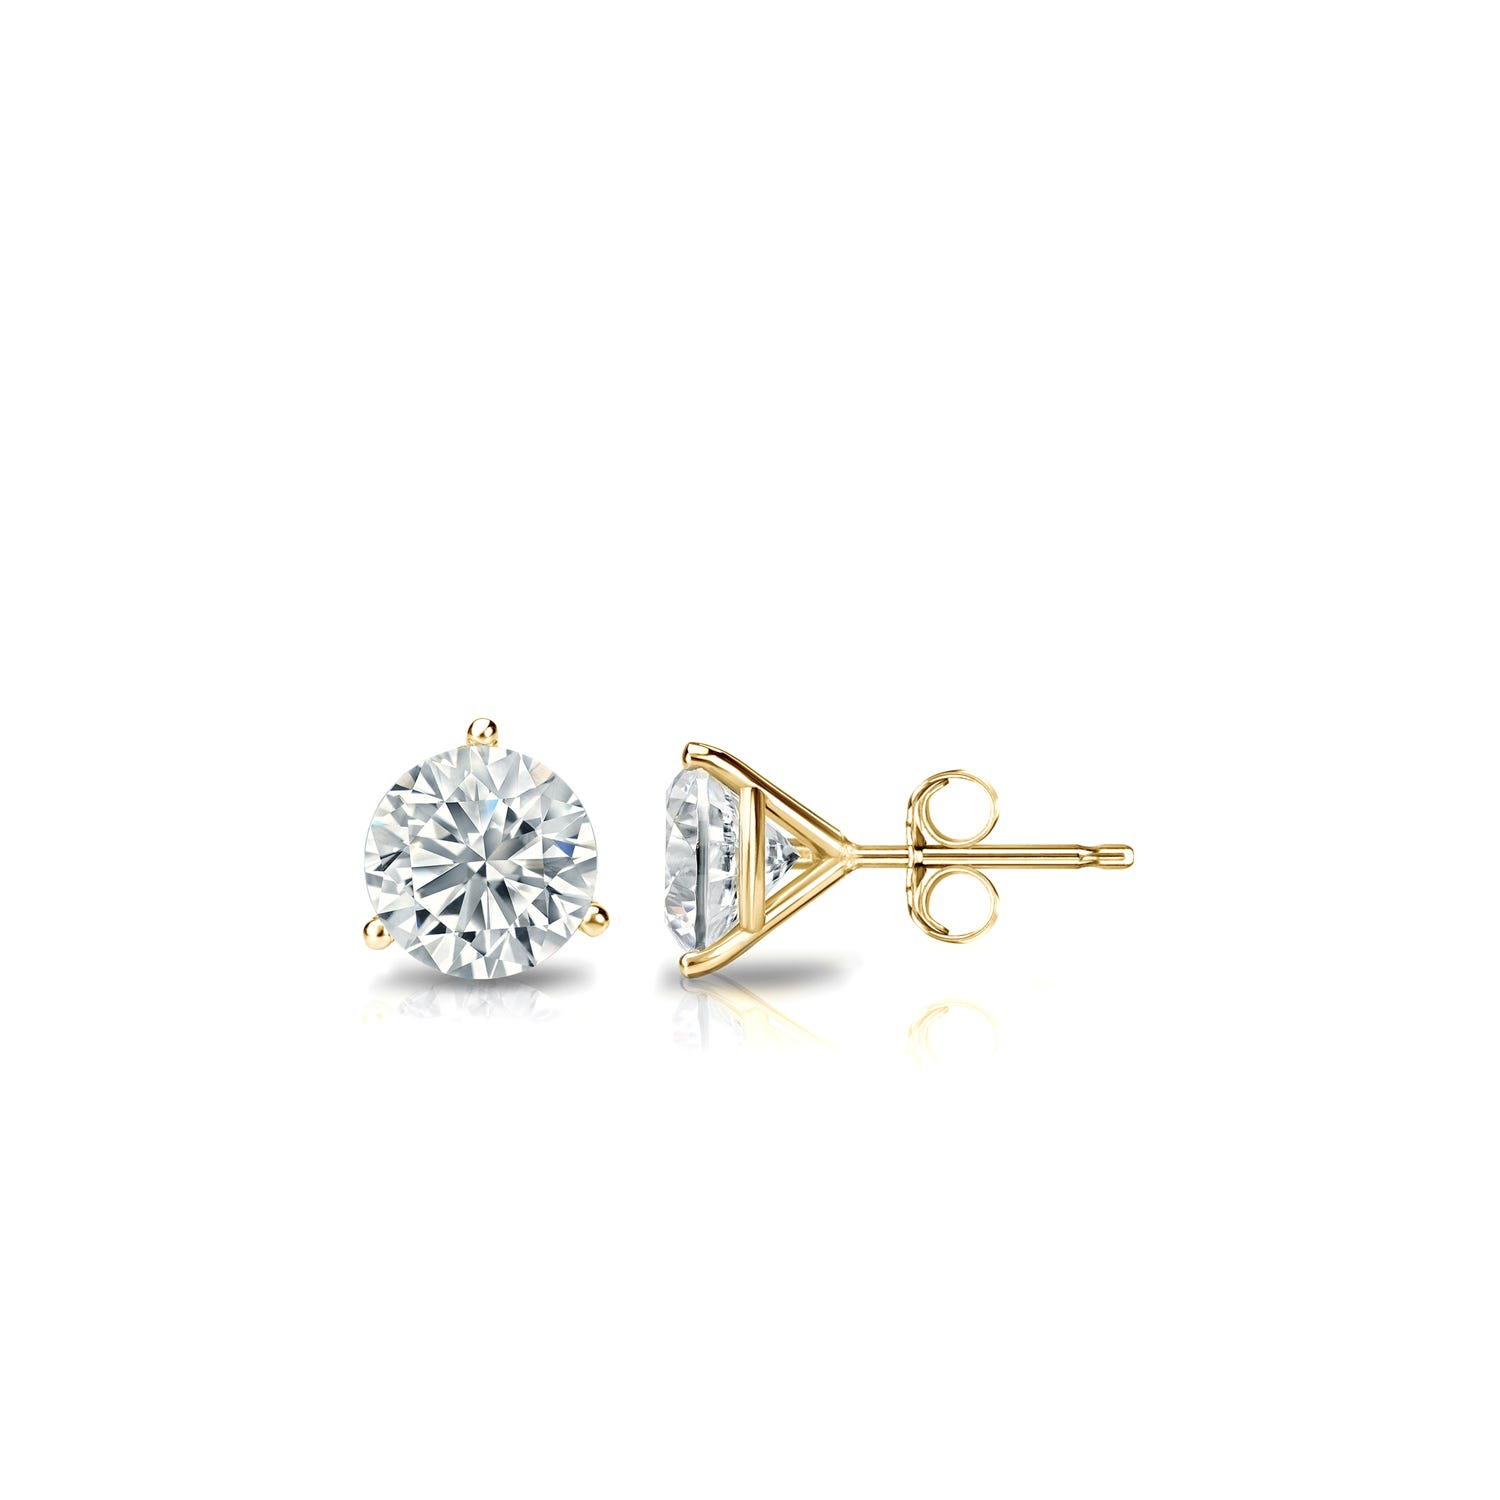 1/3 CTTW Round Diamond Solitaire Stud Earrings IJ I1 in 14K Yellow Gold 3-Prong Setting